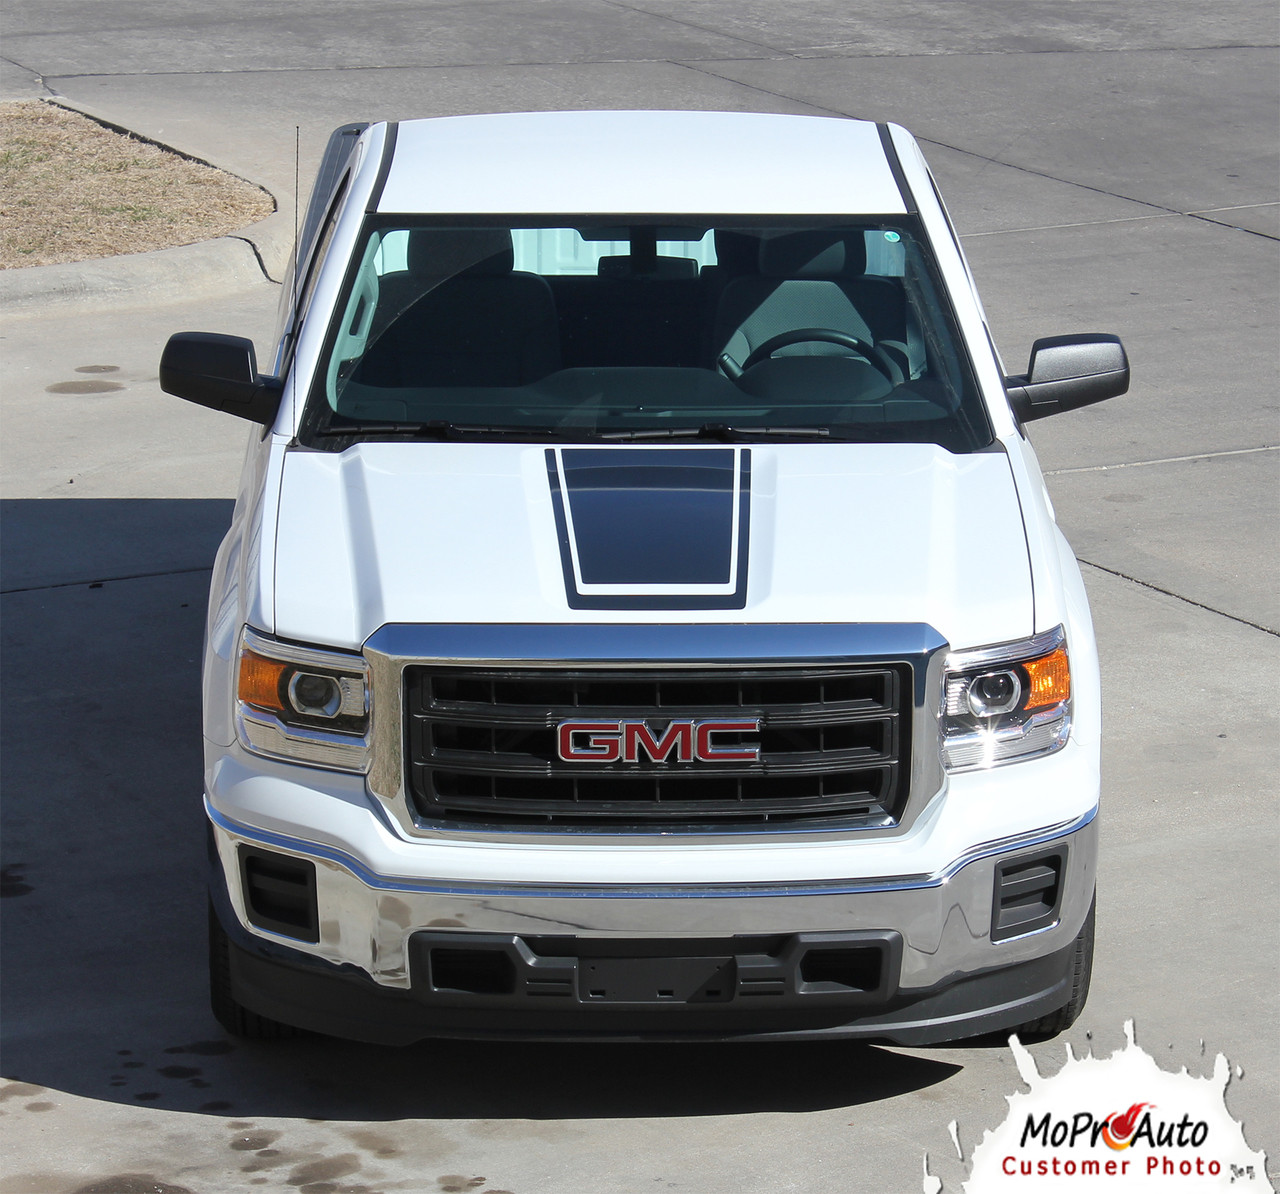 CHEVROLET COLORADO 2015 OWNERS MANUAL Pdf Download